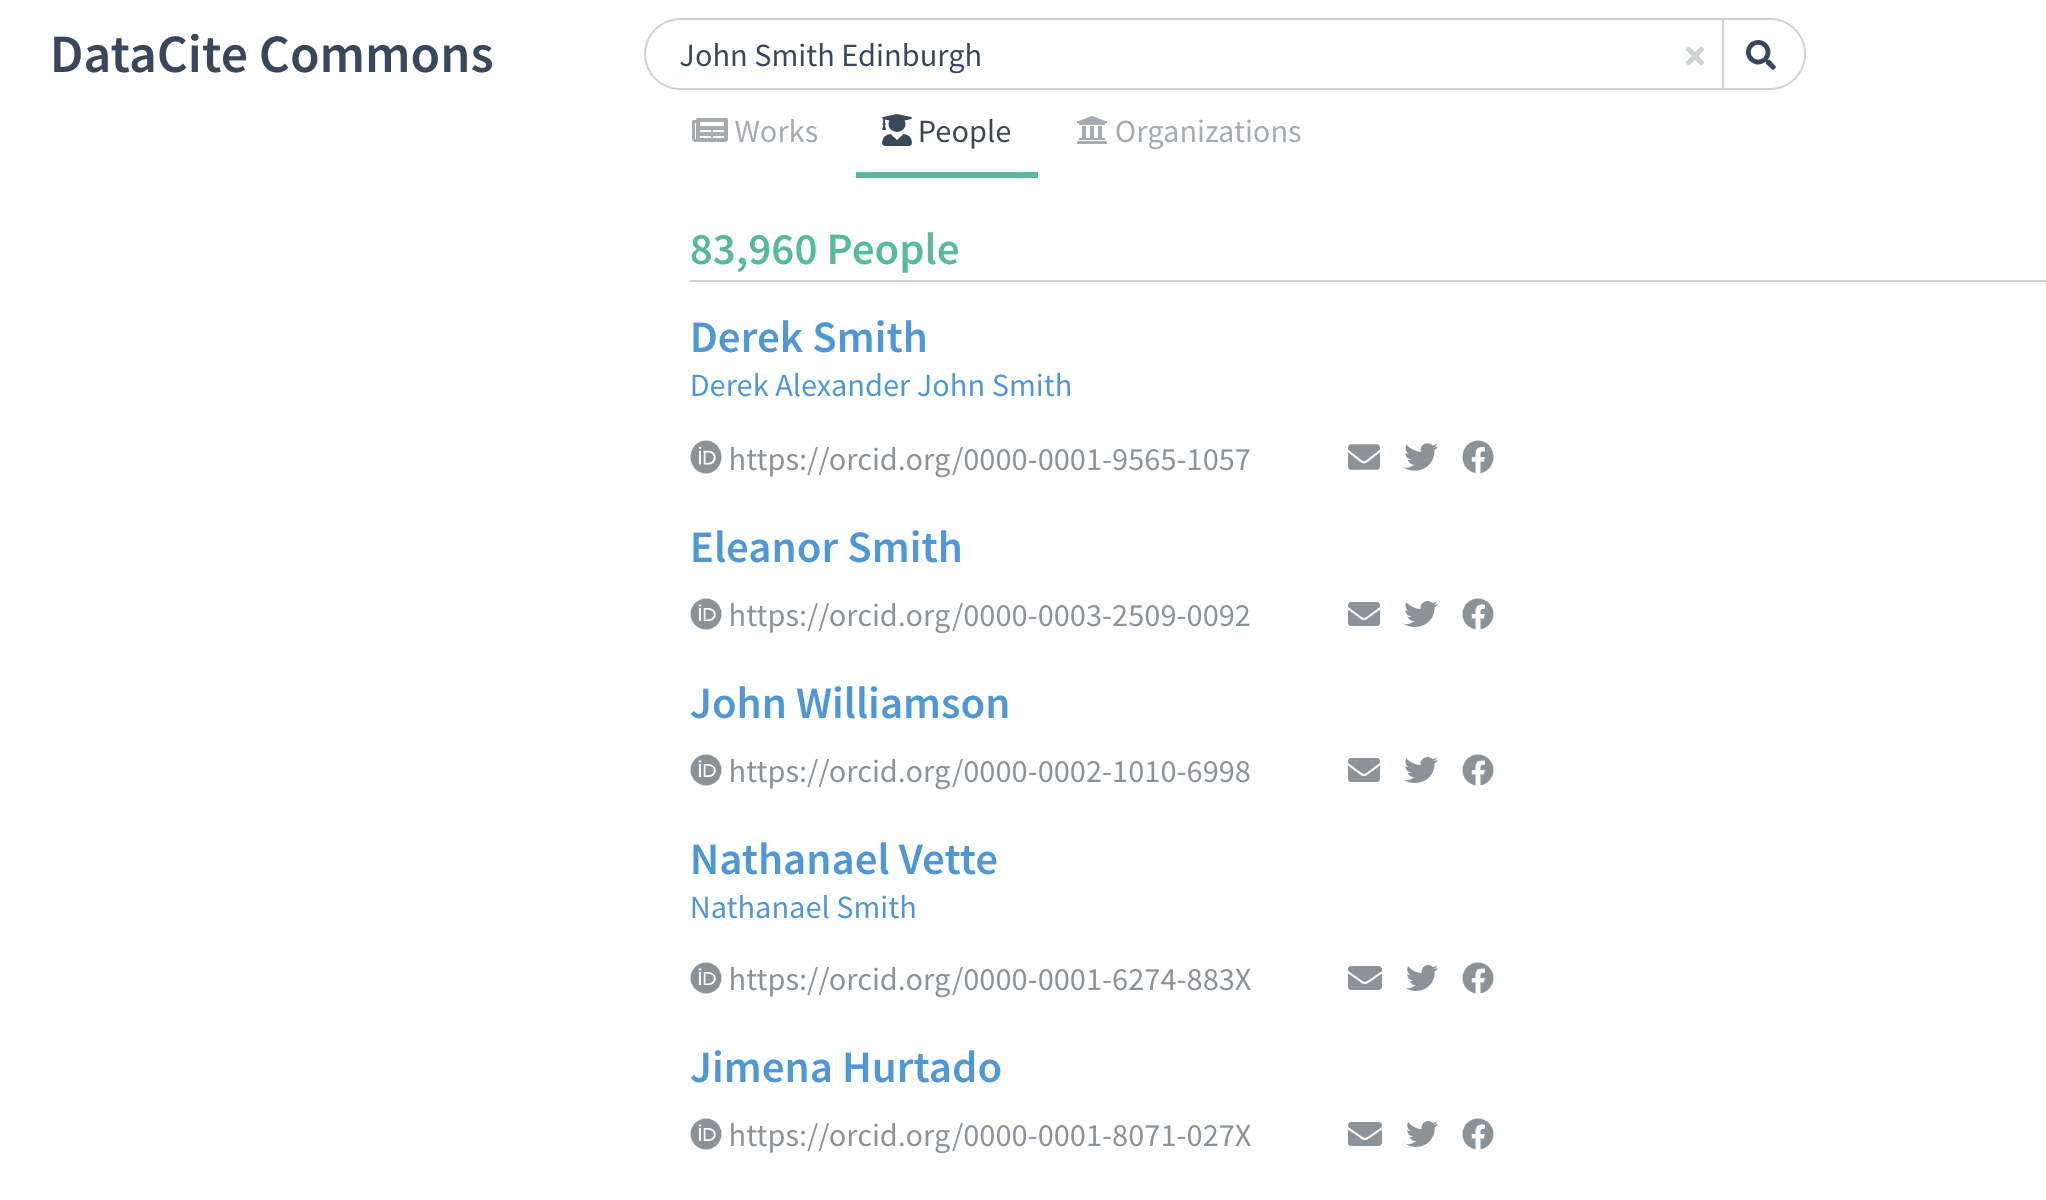 Search for people by name and keyword. https://commons.datacite.org/orcid.org?query=John%20Smith%20Edinburgh